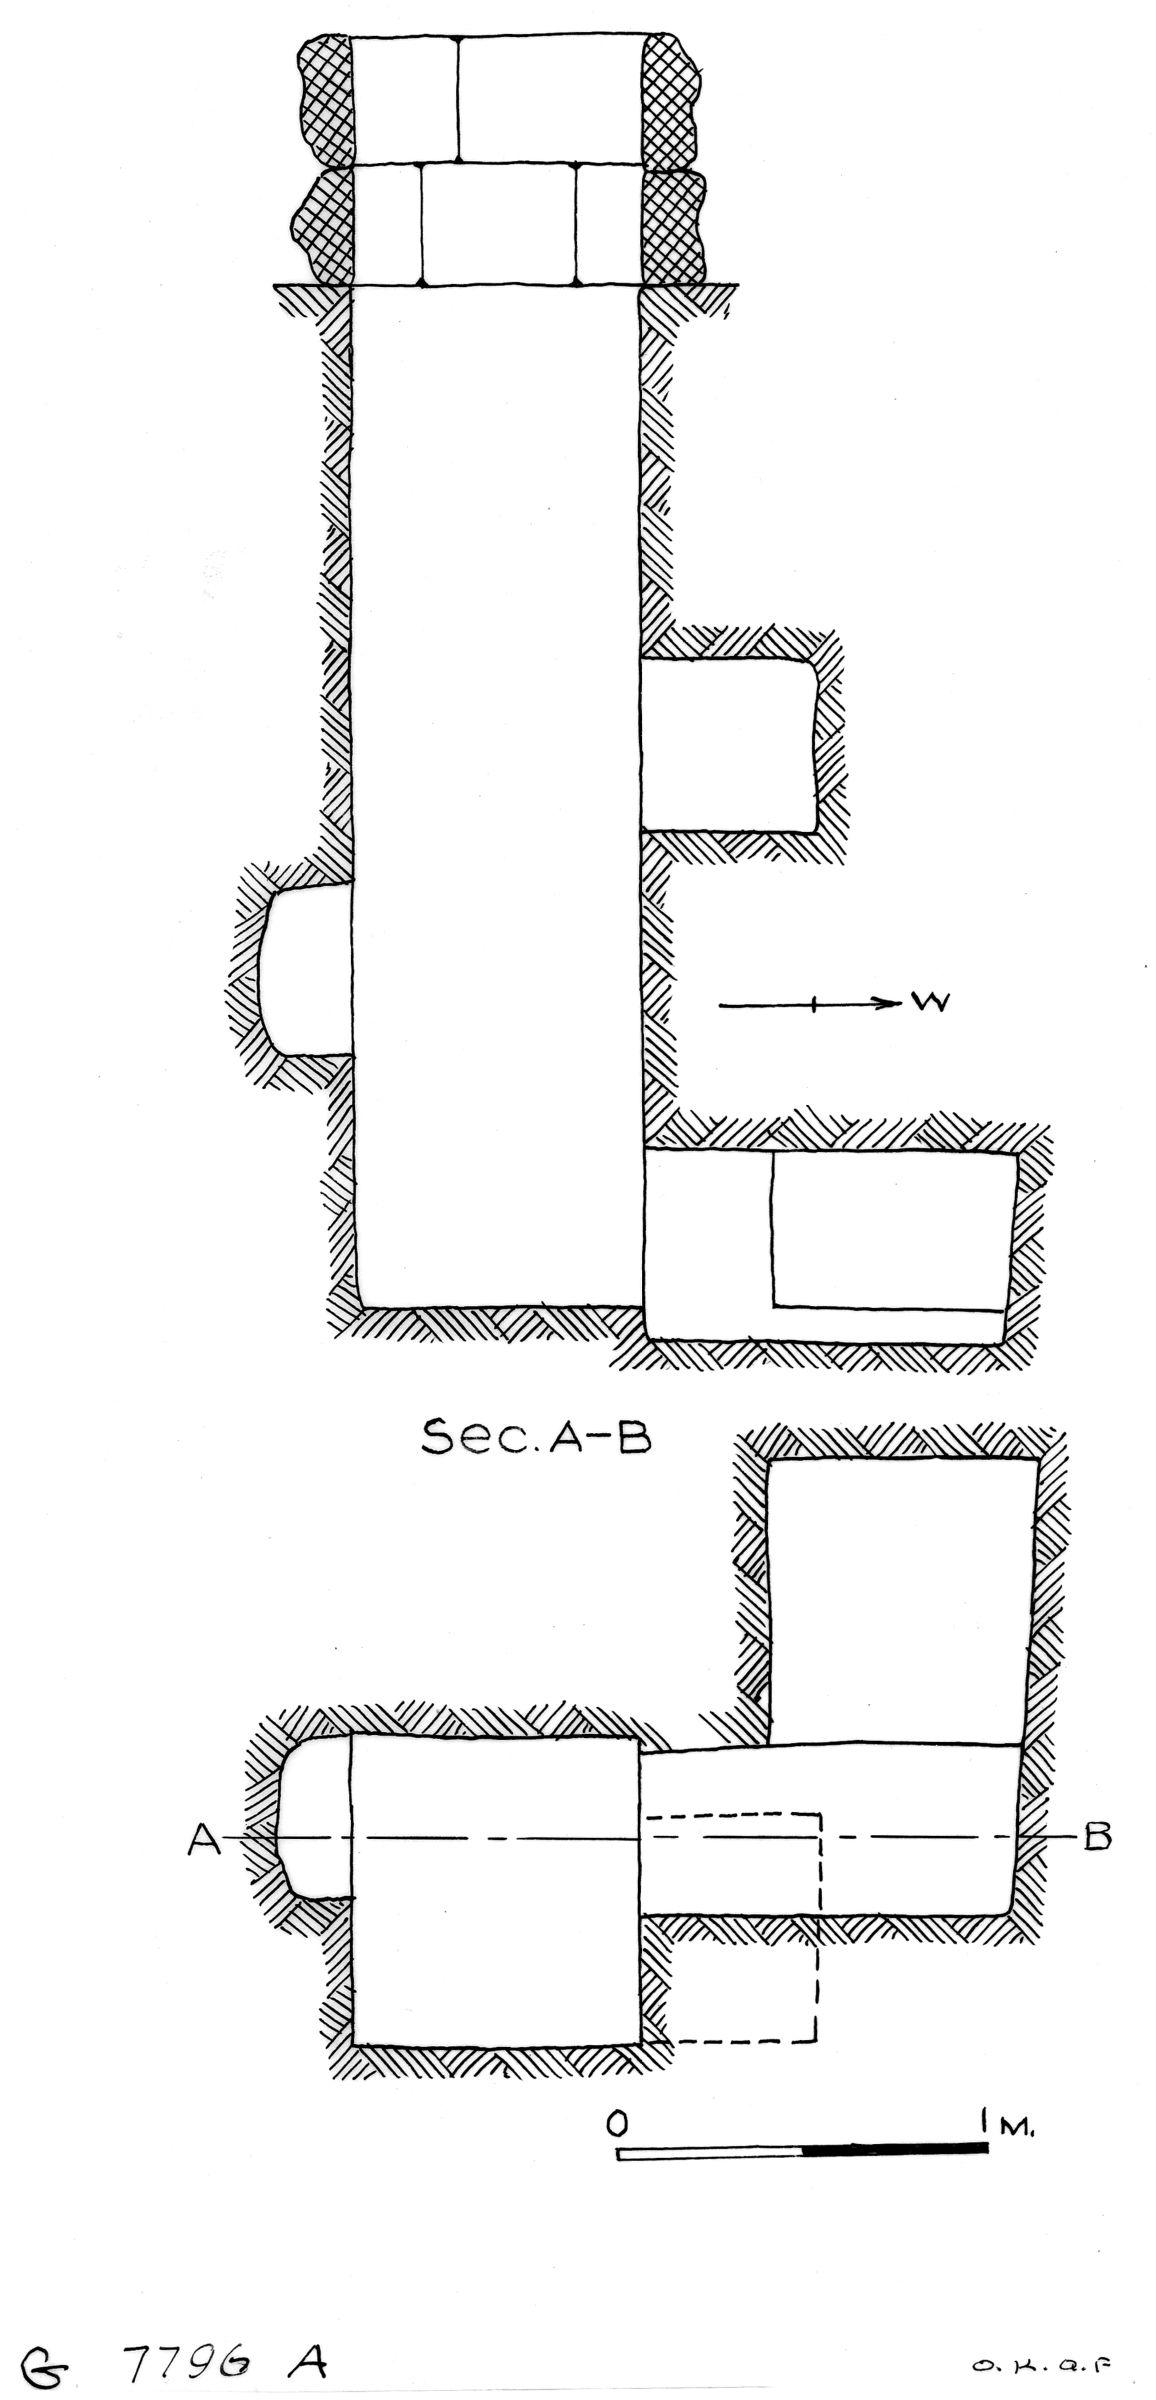 Maps and plans: G 7796, Shaft A